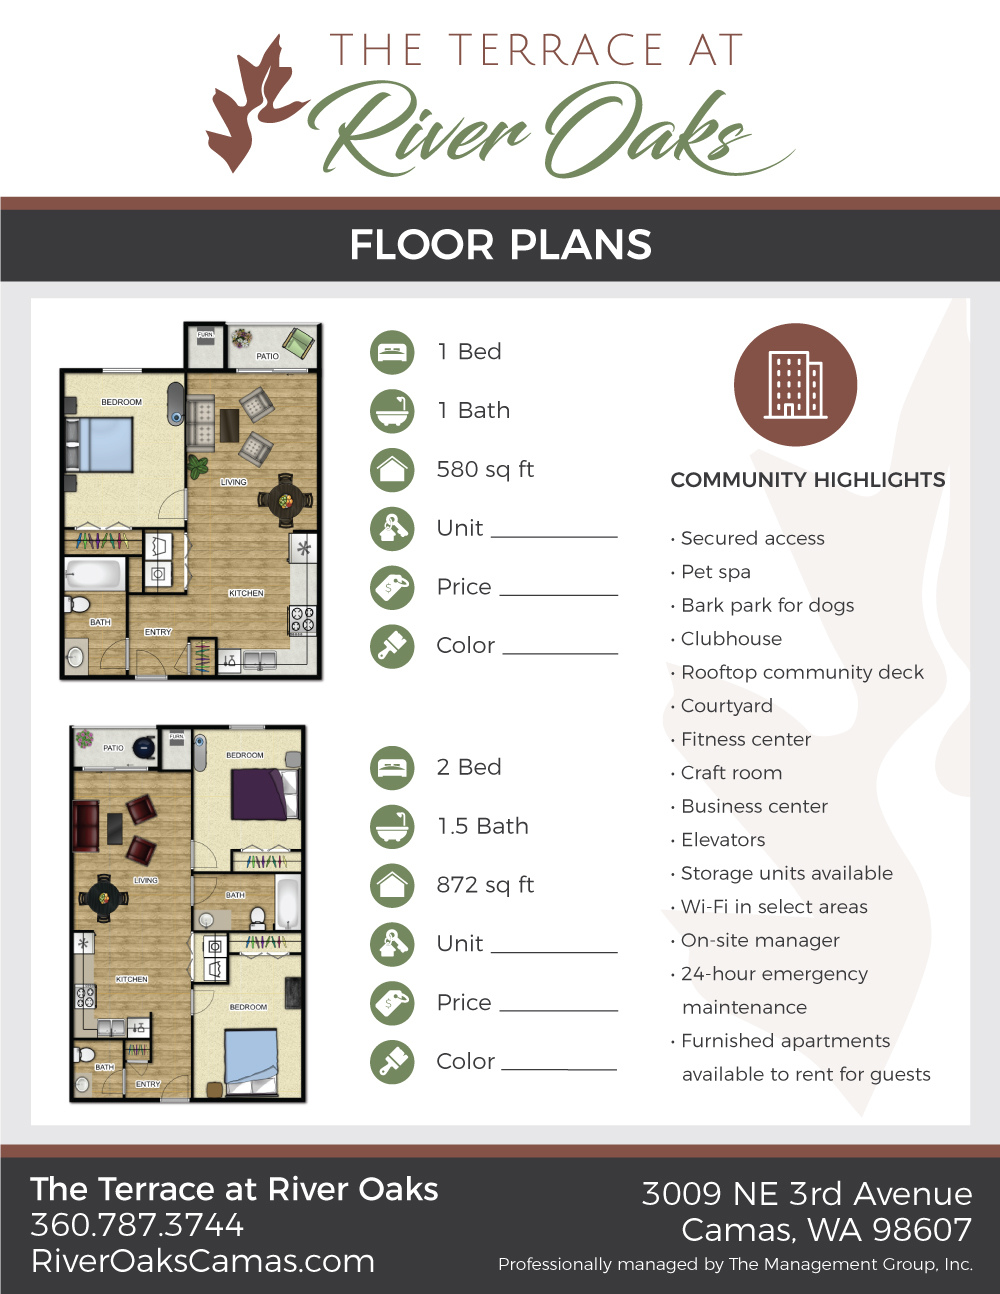 tro-flyer-floorplans-front